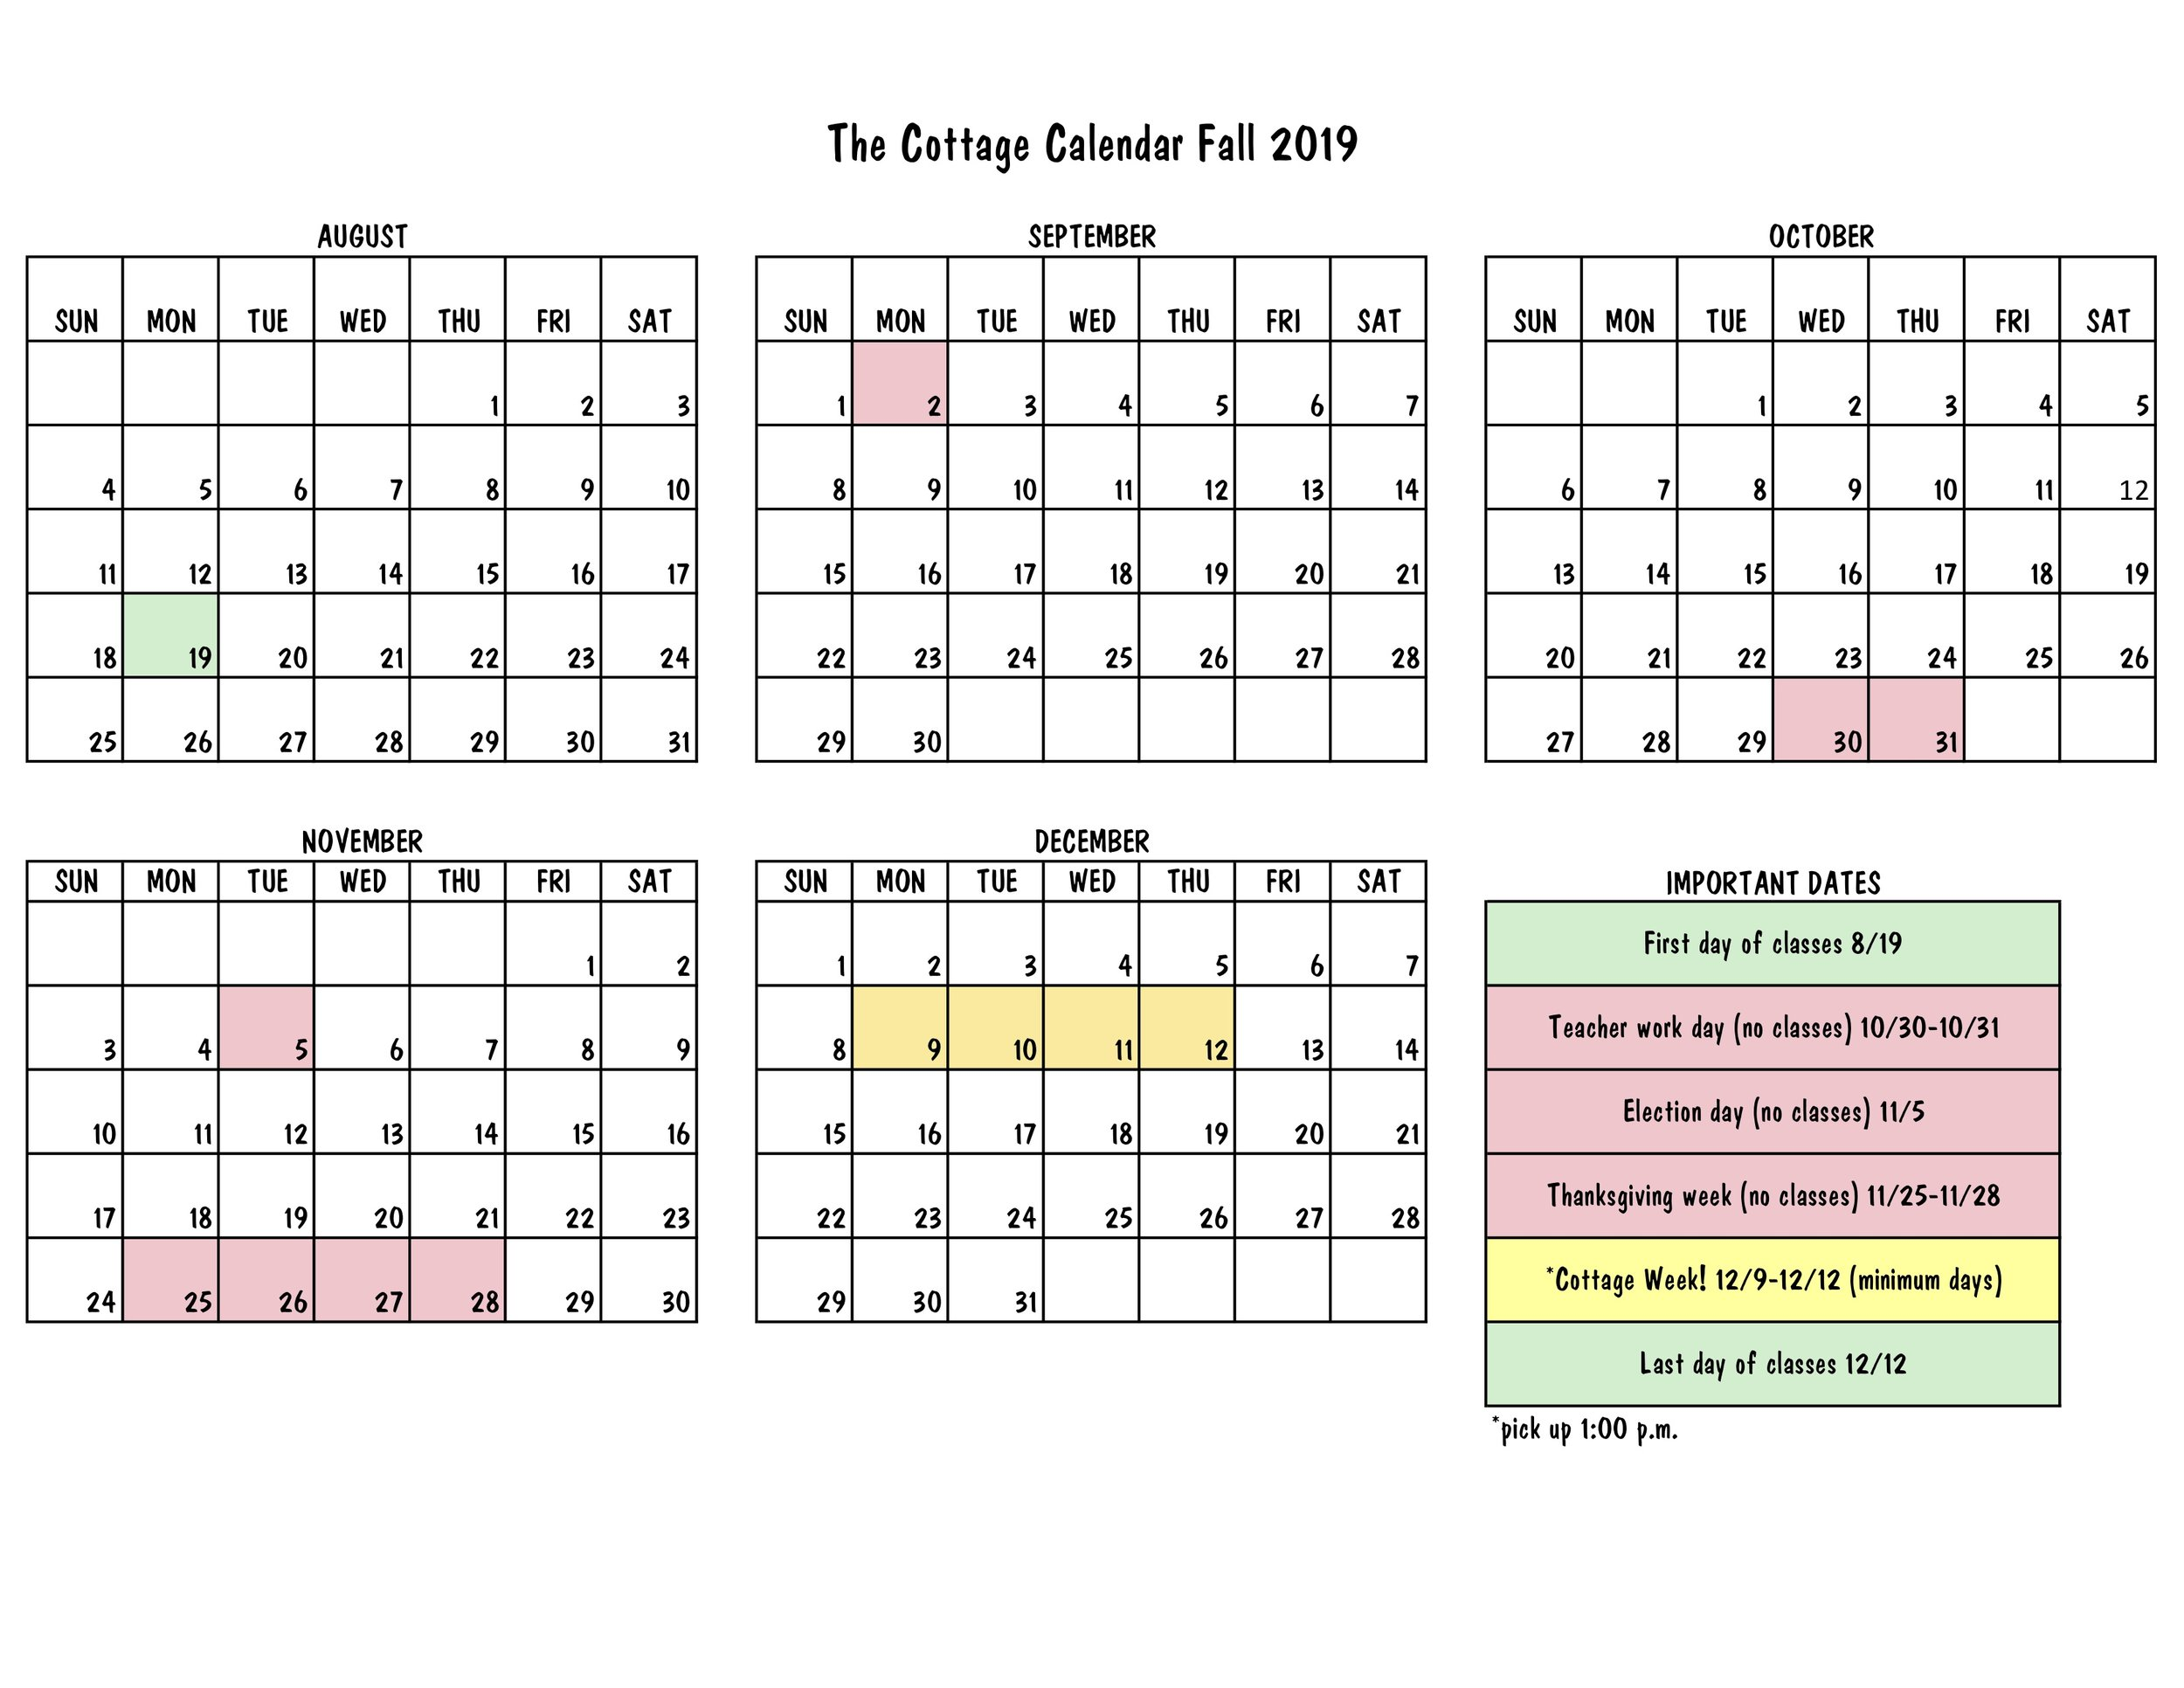 Cottage Calendar Fall 2019.jpg